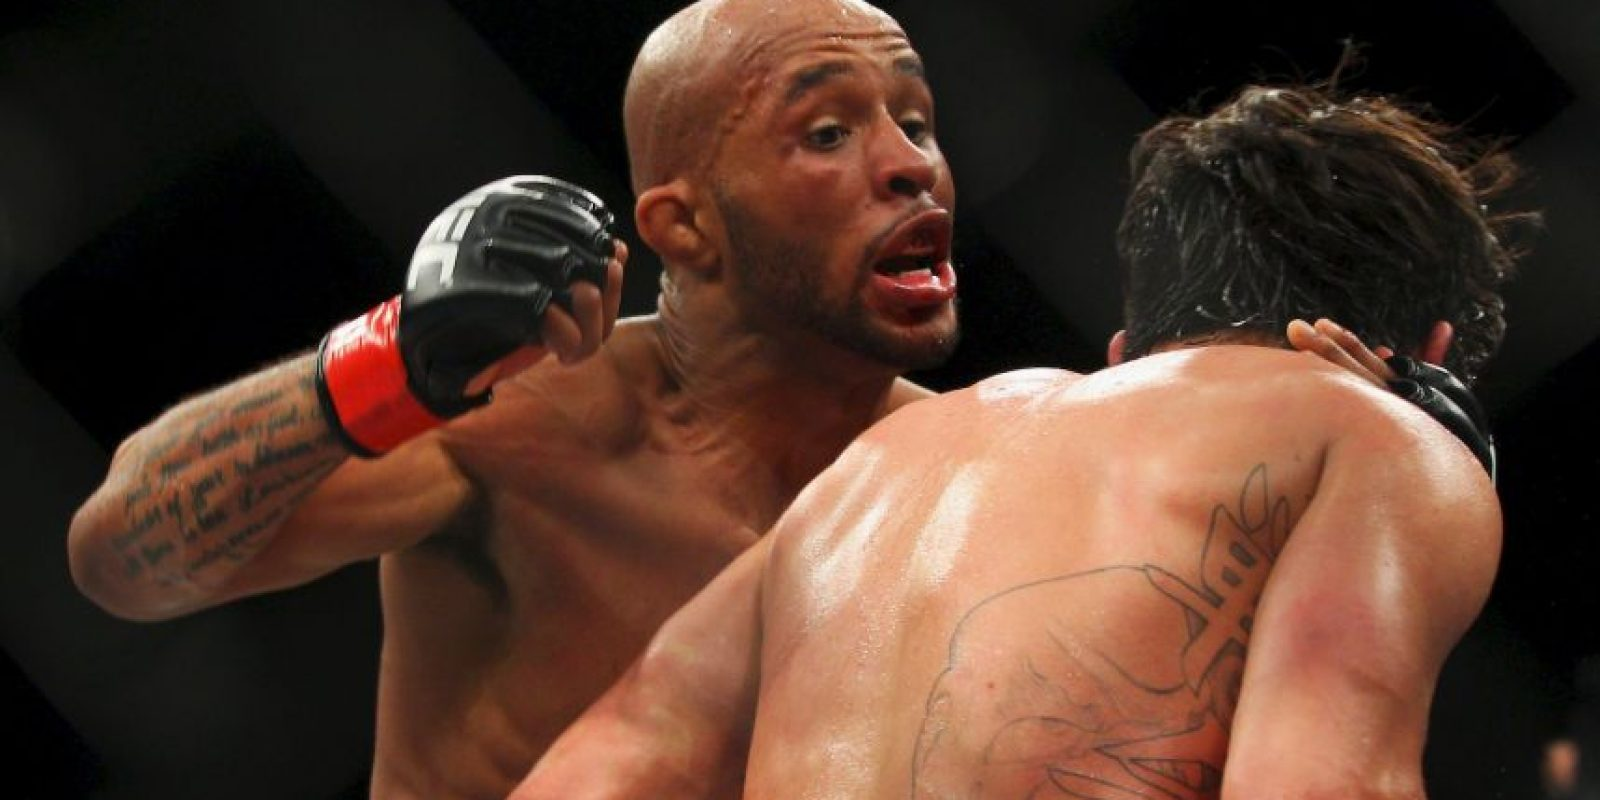 Demetrious Johnson. Se burlaban de sus grandes orejas, hasta que entró al gimnasio Foto: Getty Images